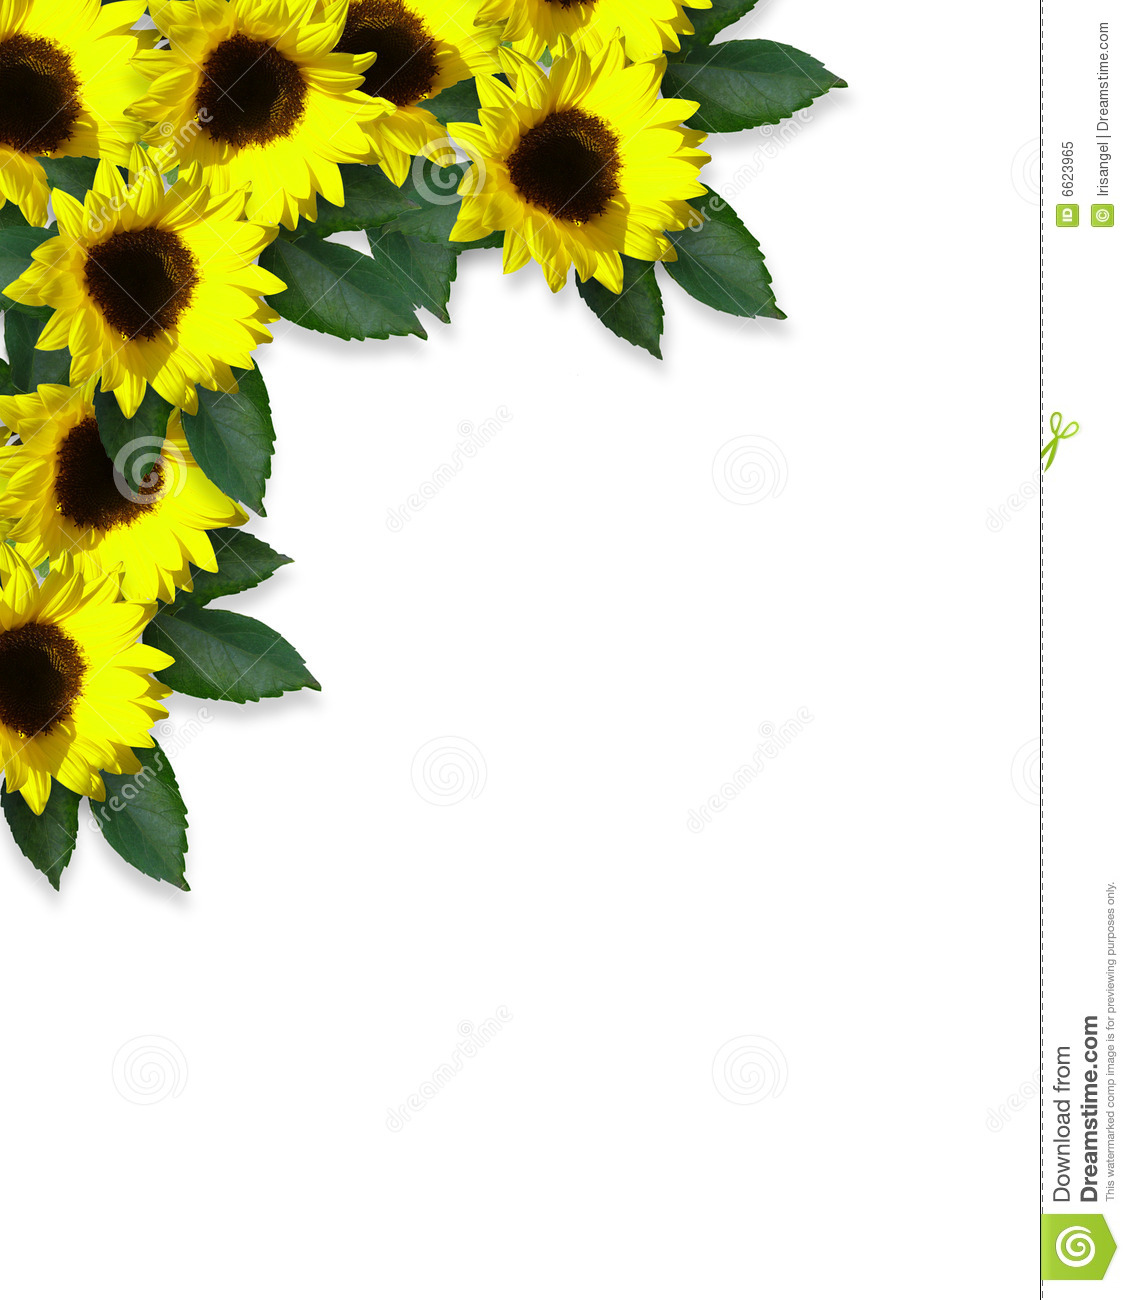 clip art borders sunflowers - photo #8